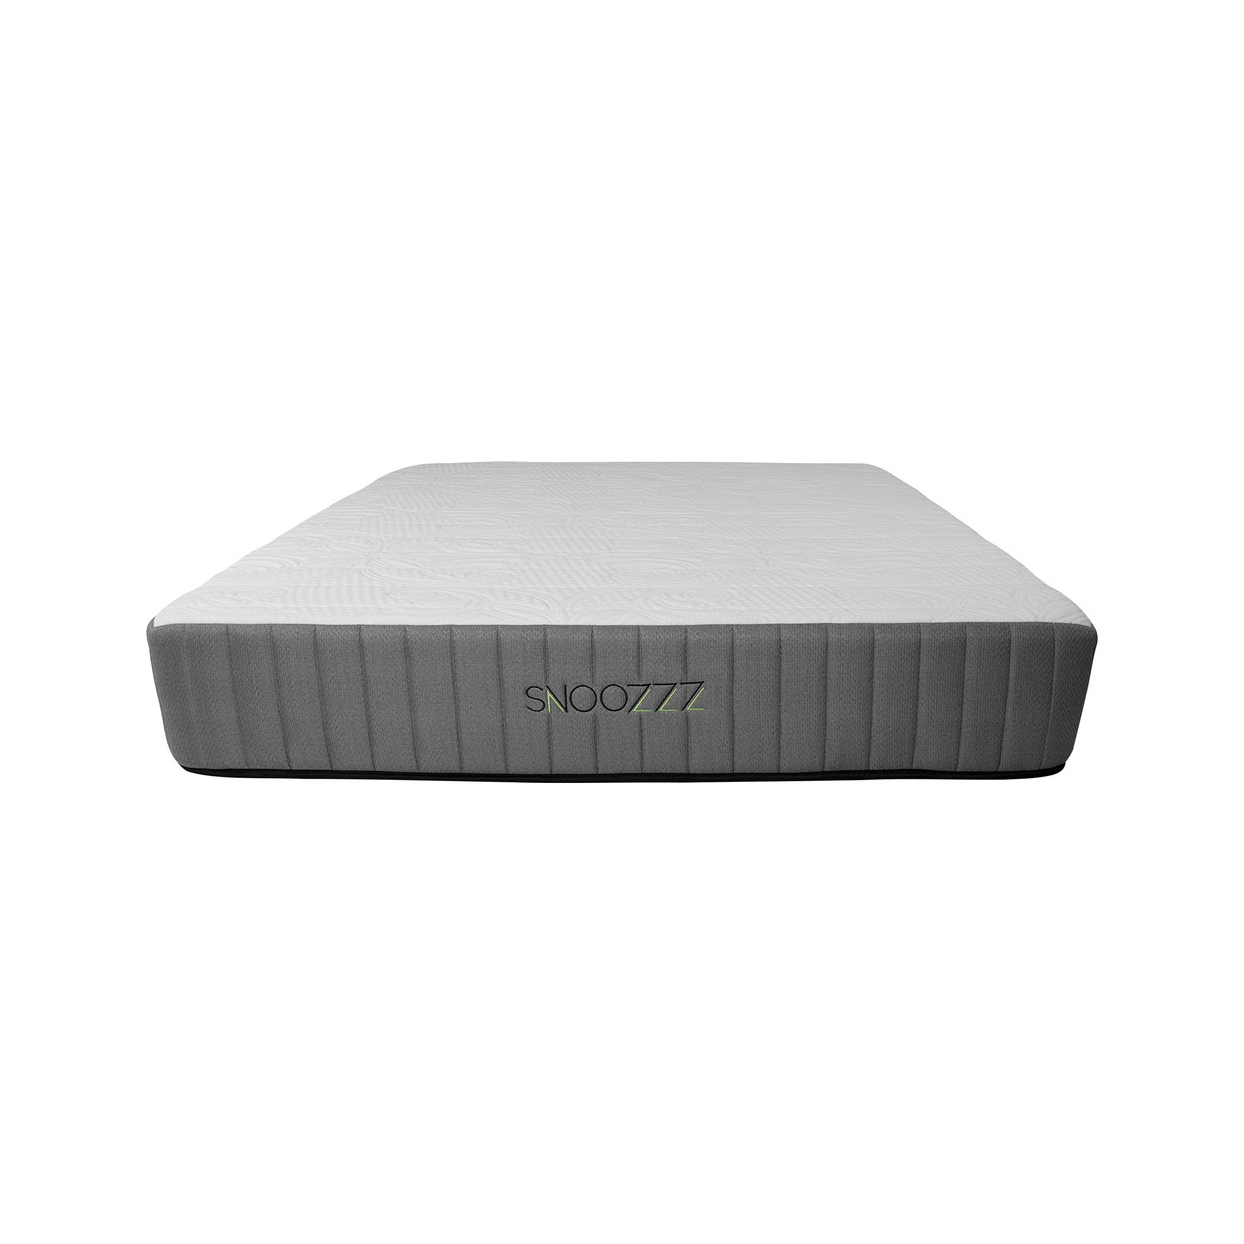 Snoozzz mattress from Houzz with dark gray striped sides and flat white top